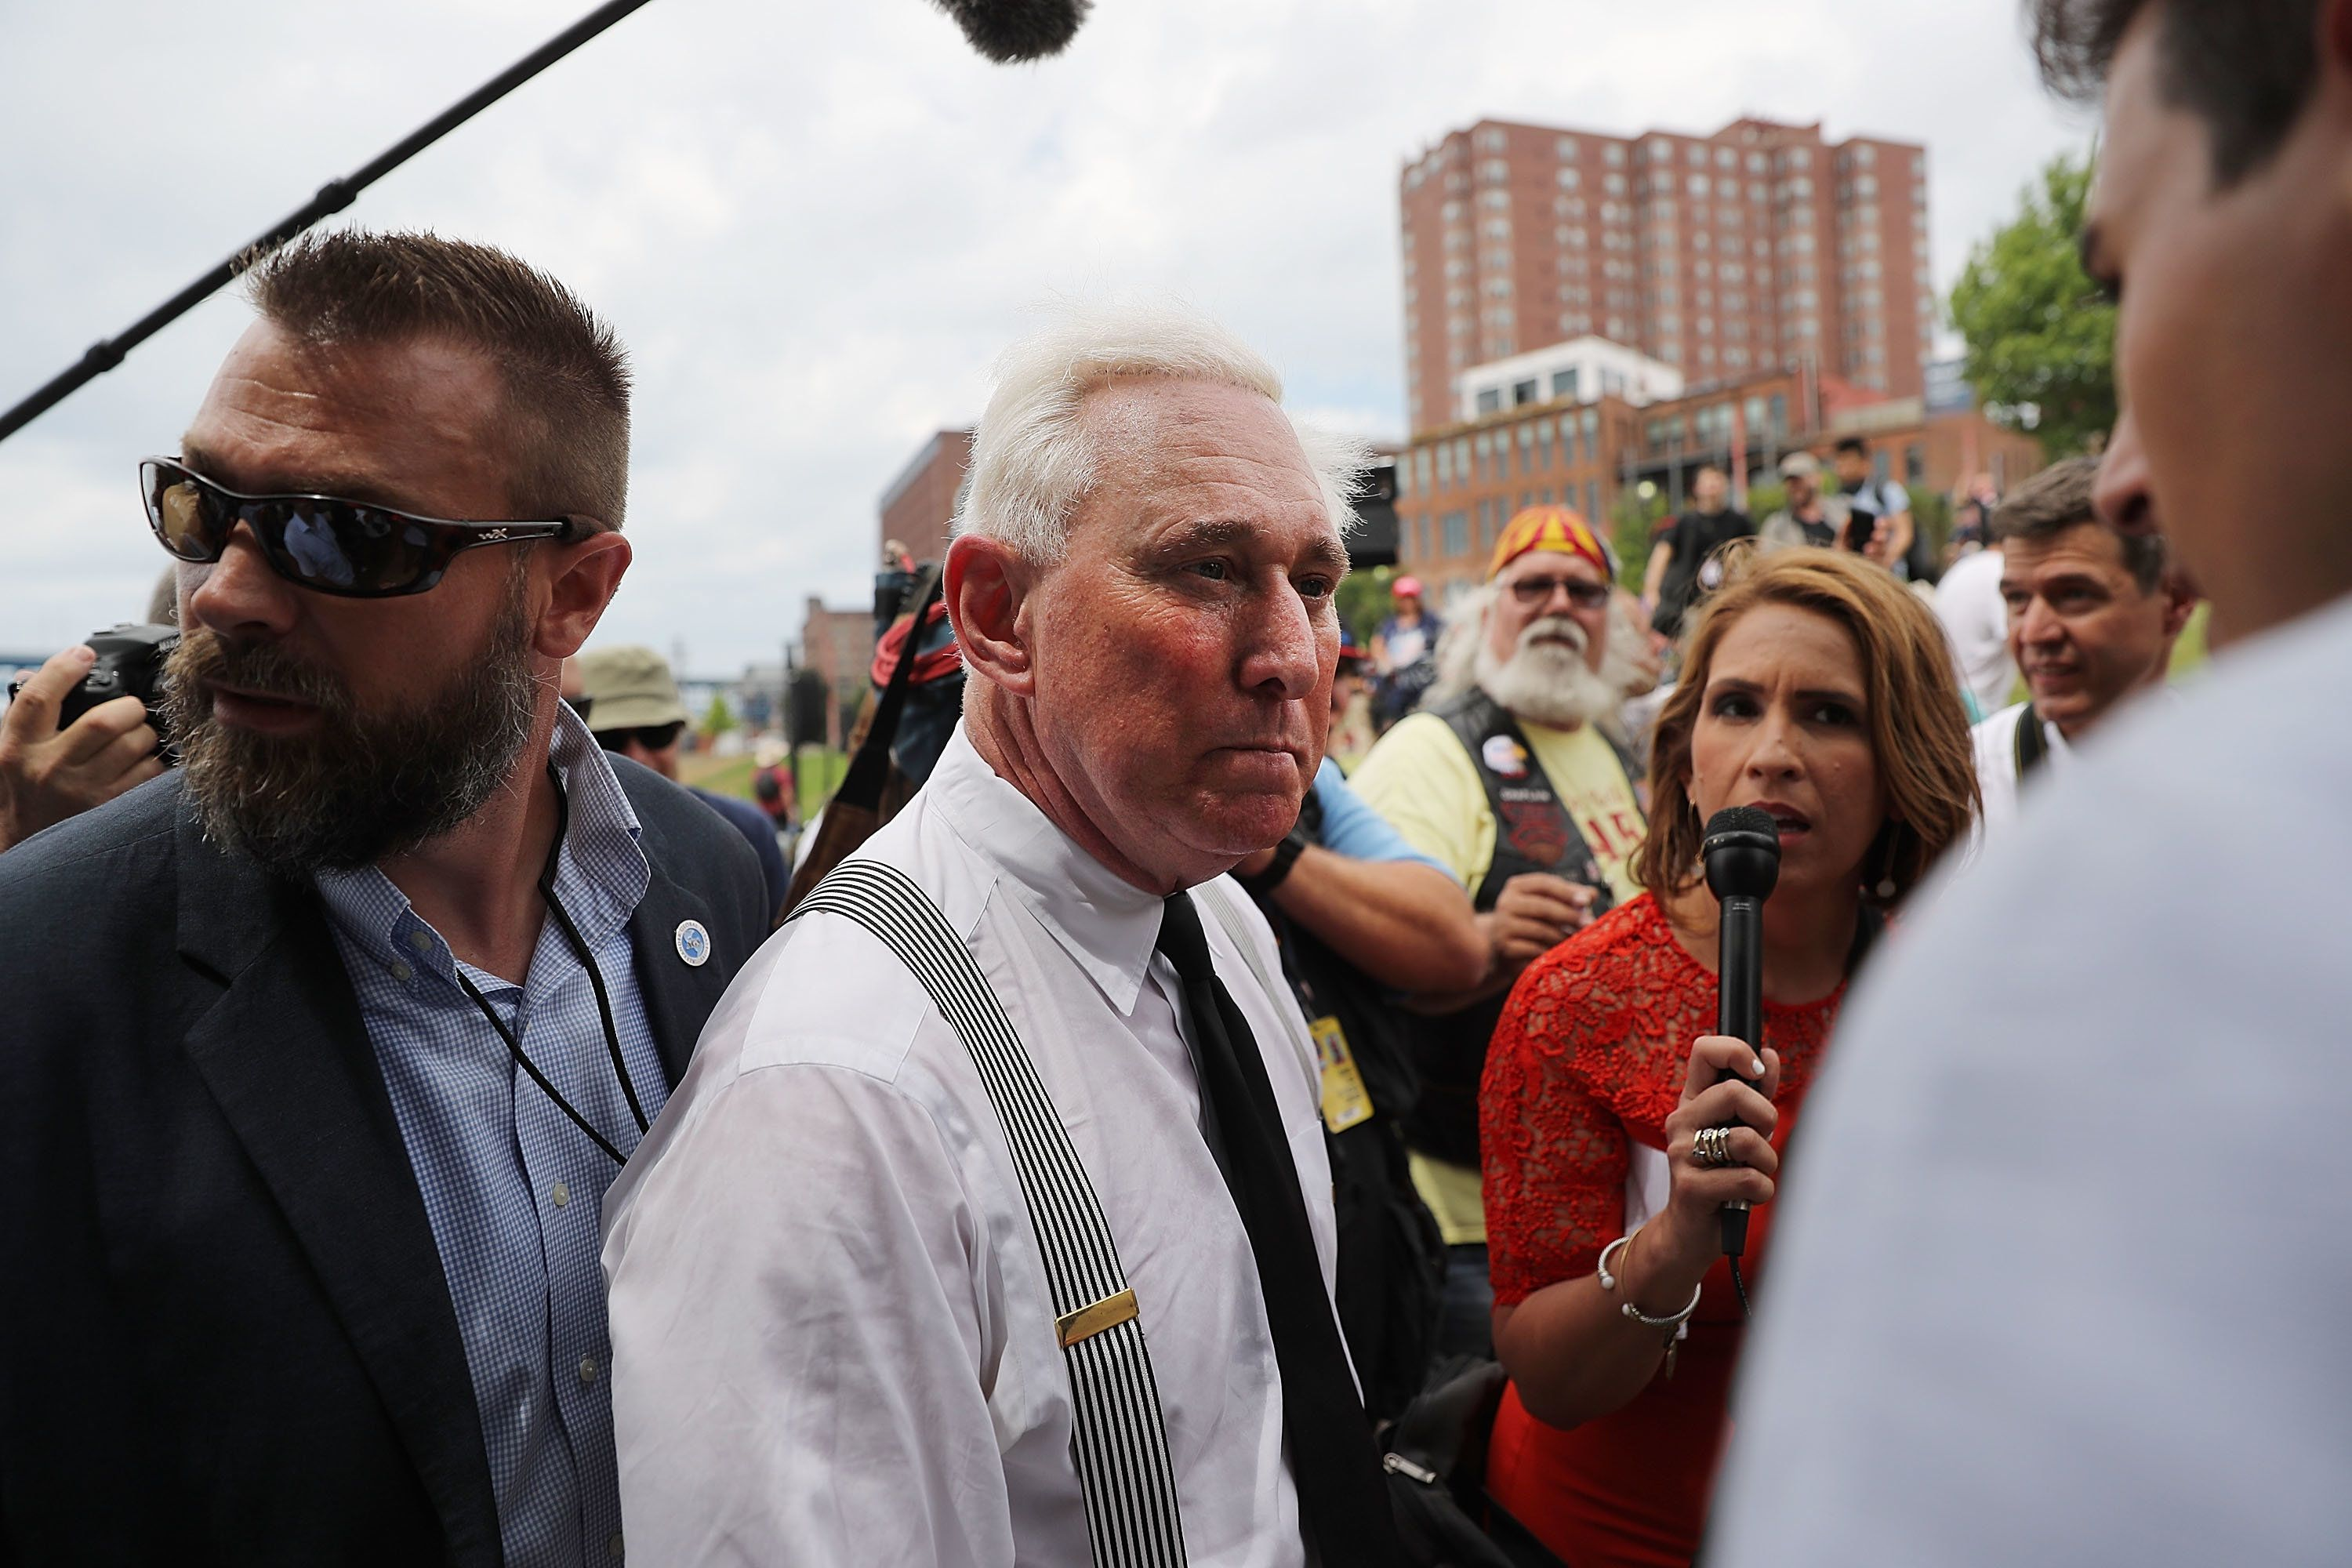 Roger Stone set to appear in federal court in Washington DC